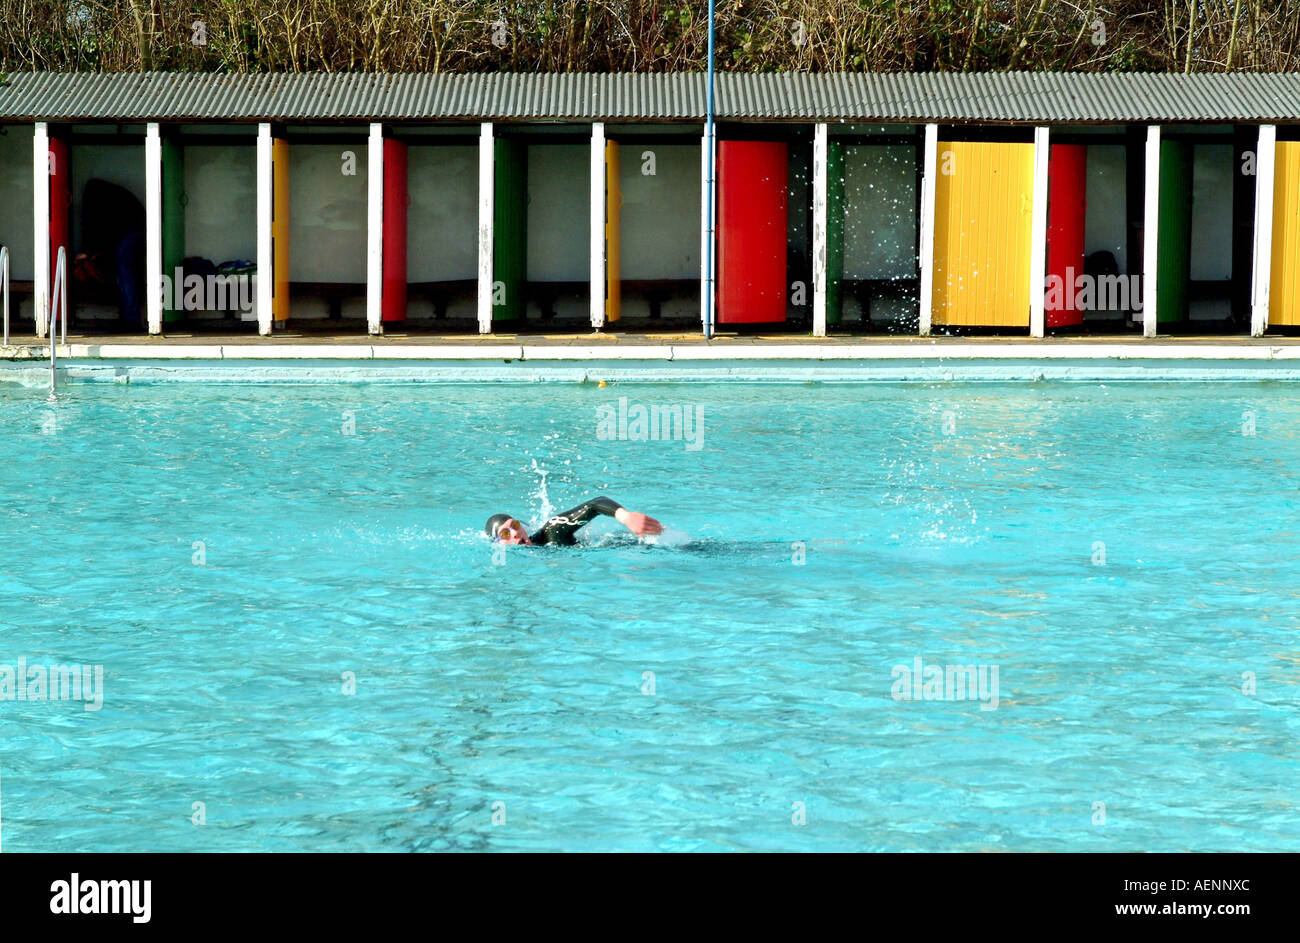 Tooting Bec Lido London Is The Largest Open Air Swimming Pool In Stock Photo Royalty Free